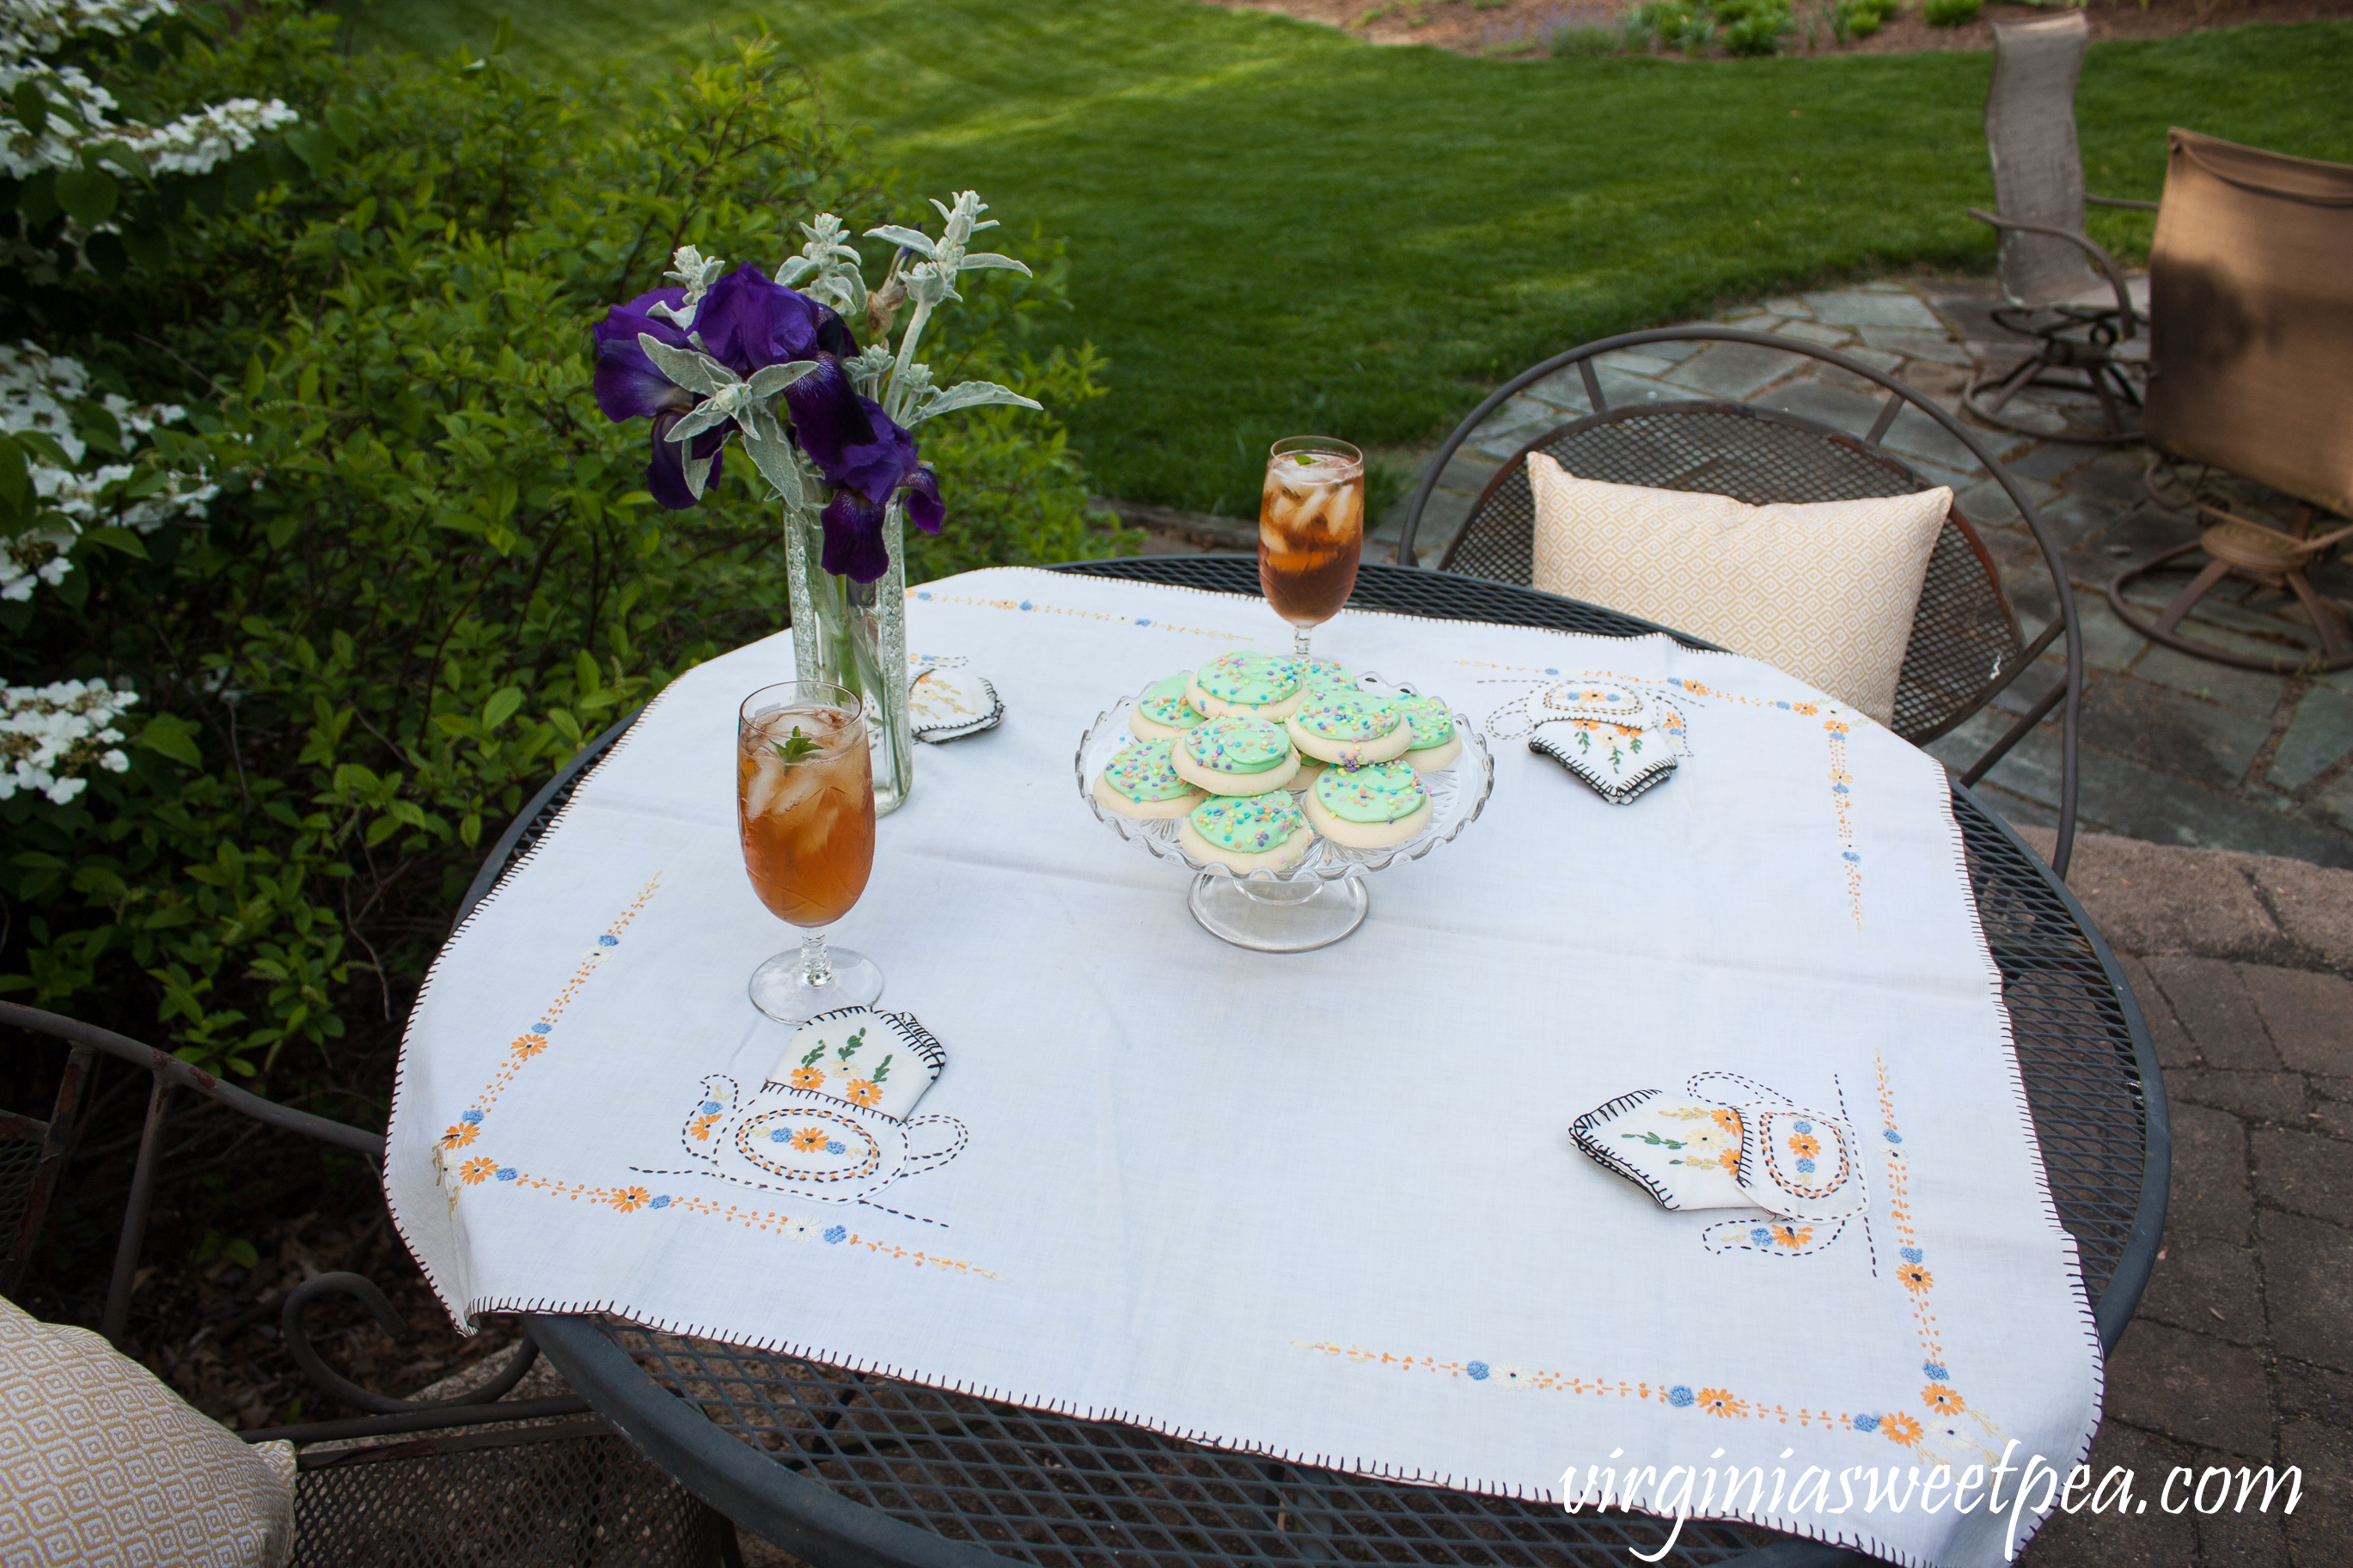 Spring Tea Party featuring a tea party themed embroidered tablecloth from the early 1930's.